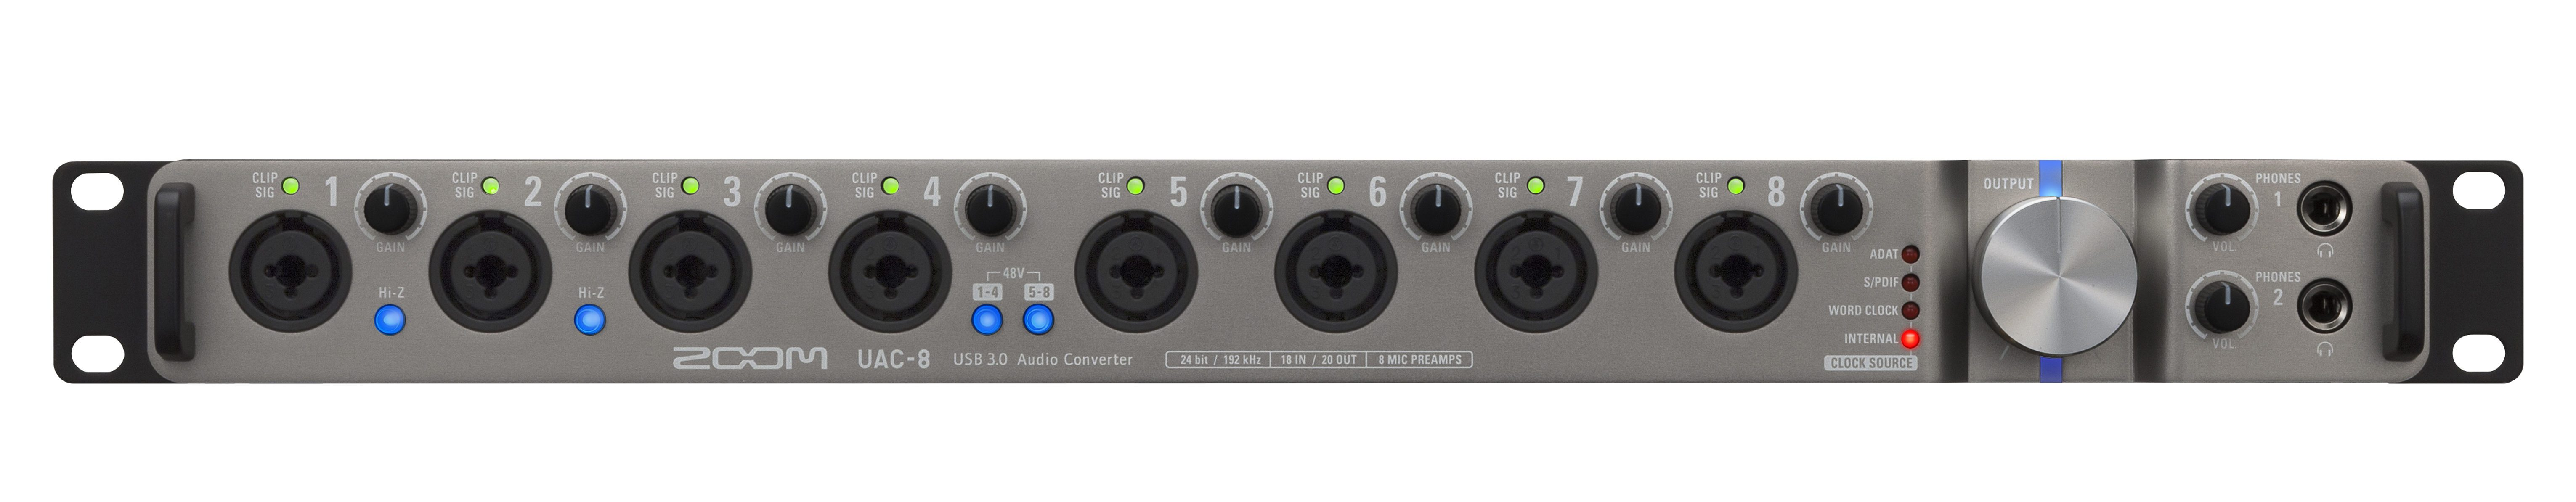 Test: Zoom UAC-8, USB 3 0 Audiointerface - AMAZONA de